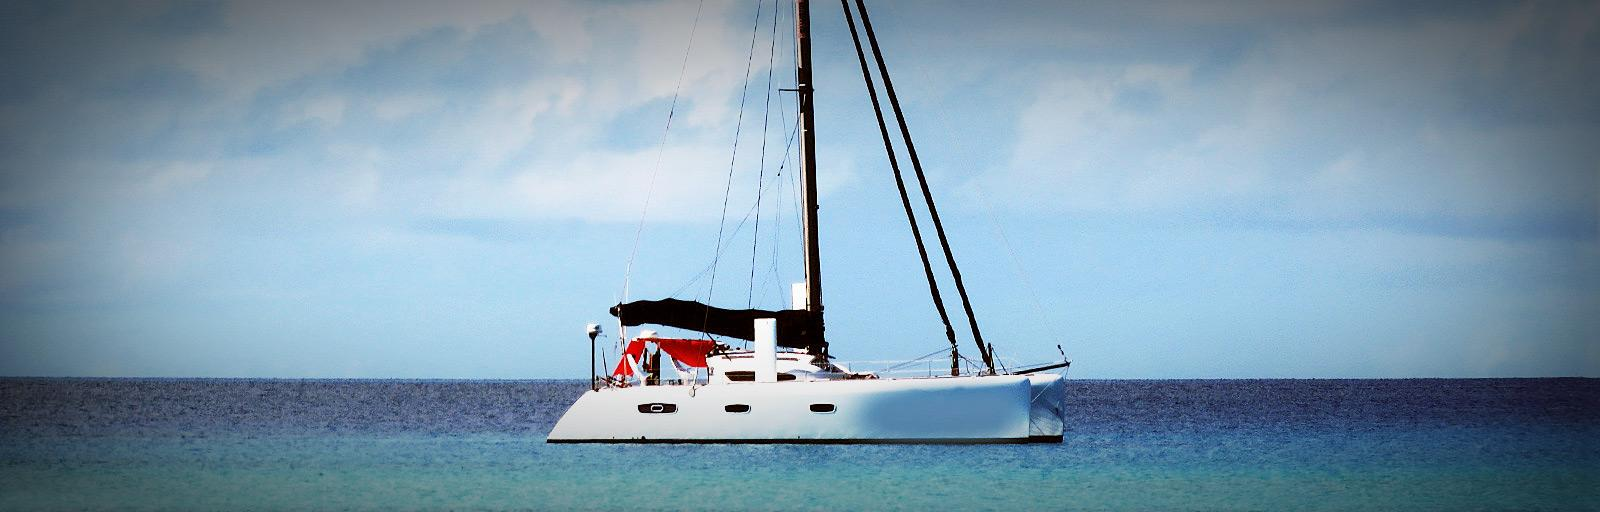 XL Catamarans - TS 50